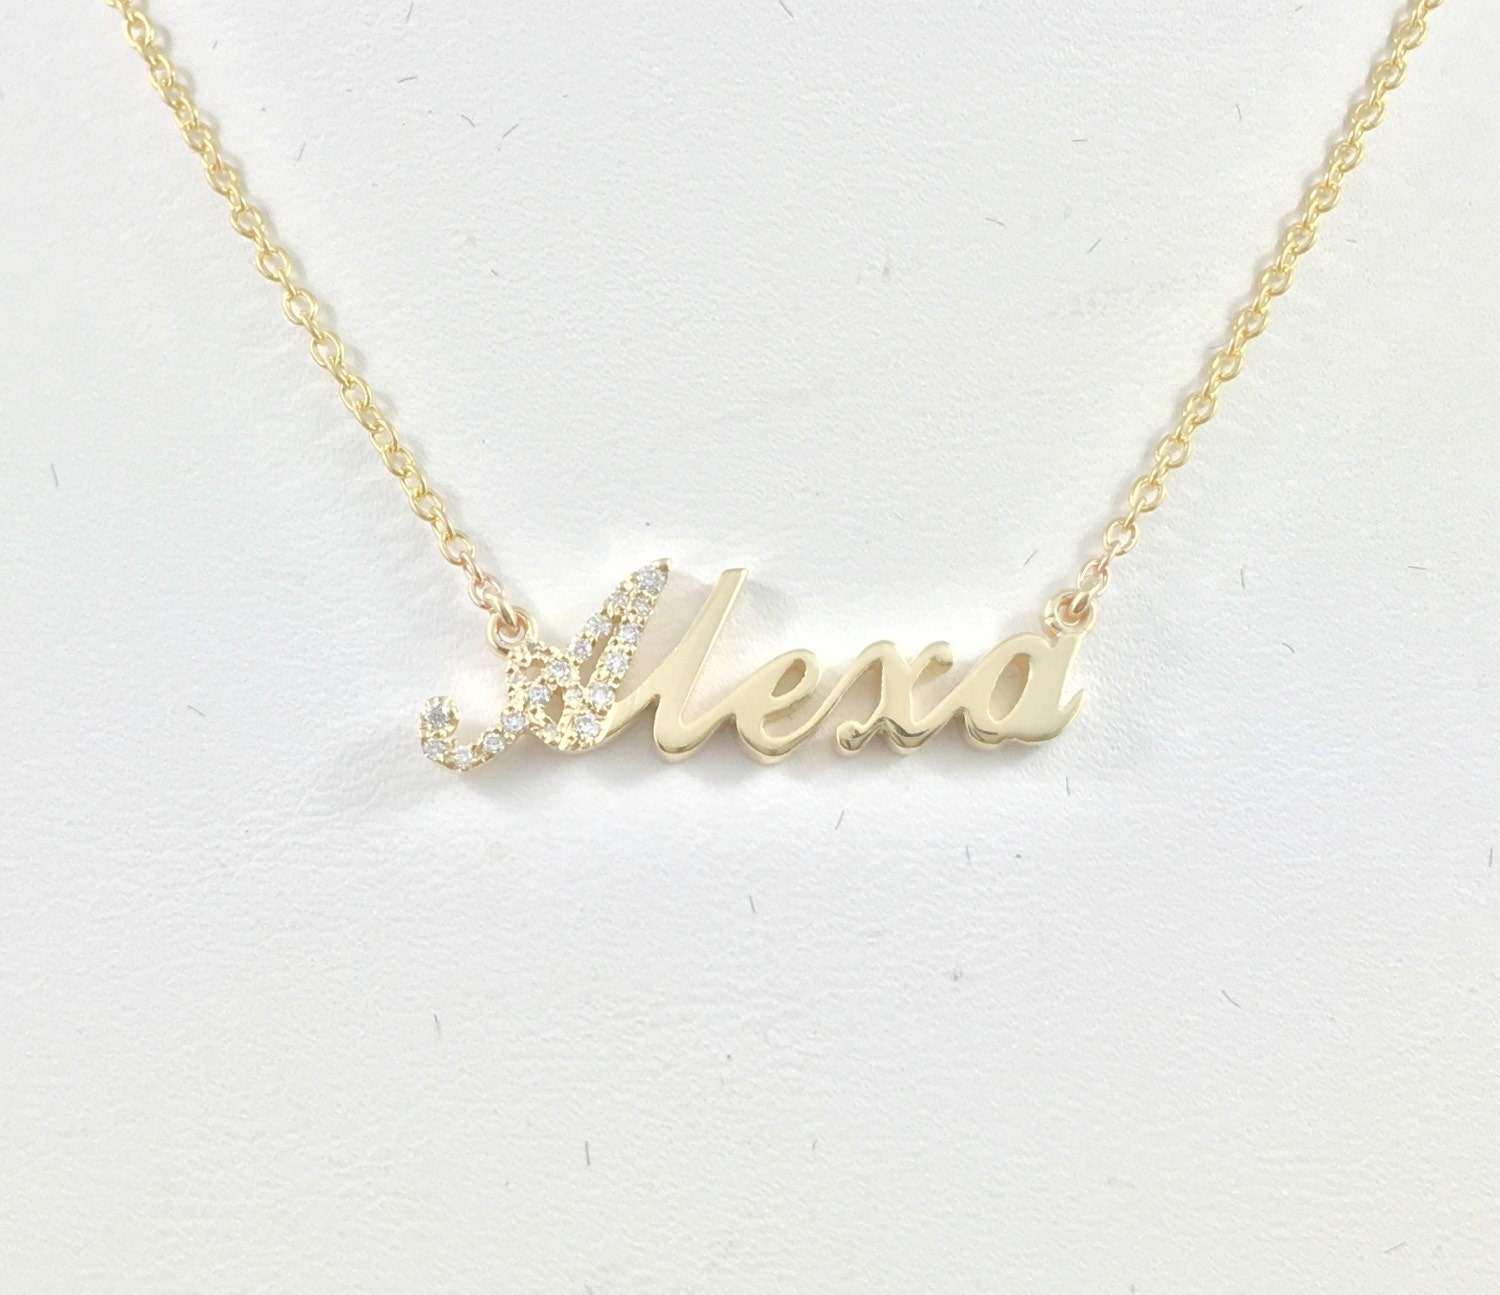 nameplate gold cursive handstamped jewelry bar necklaces necklace rose handmade name